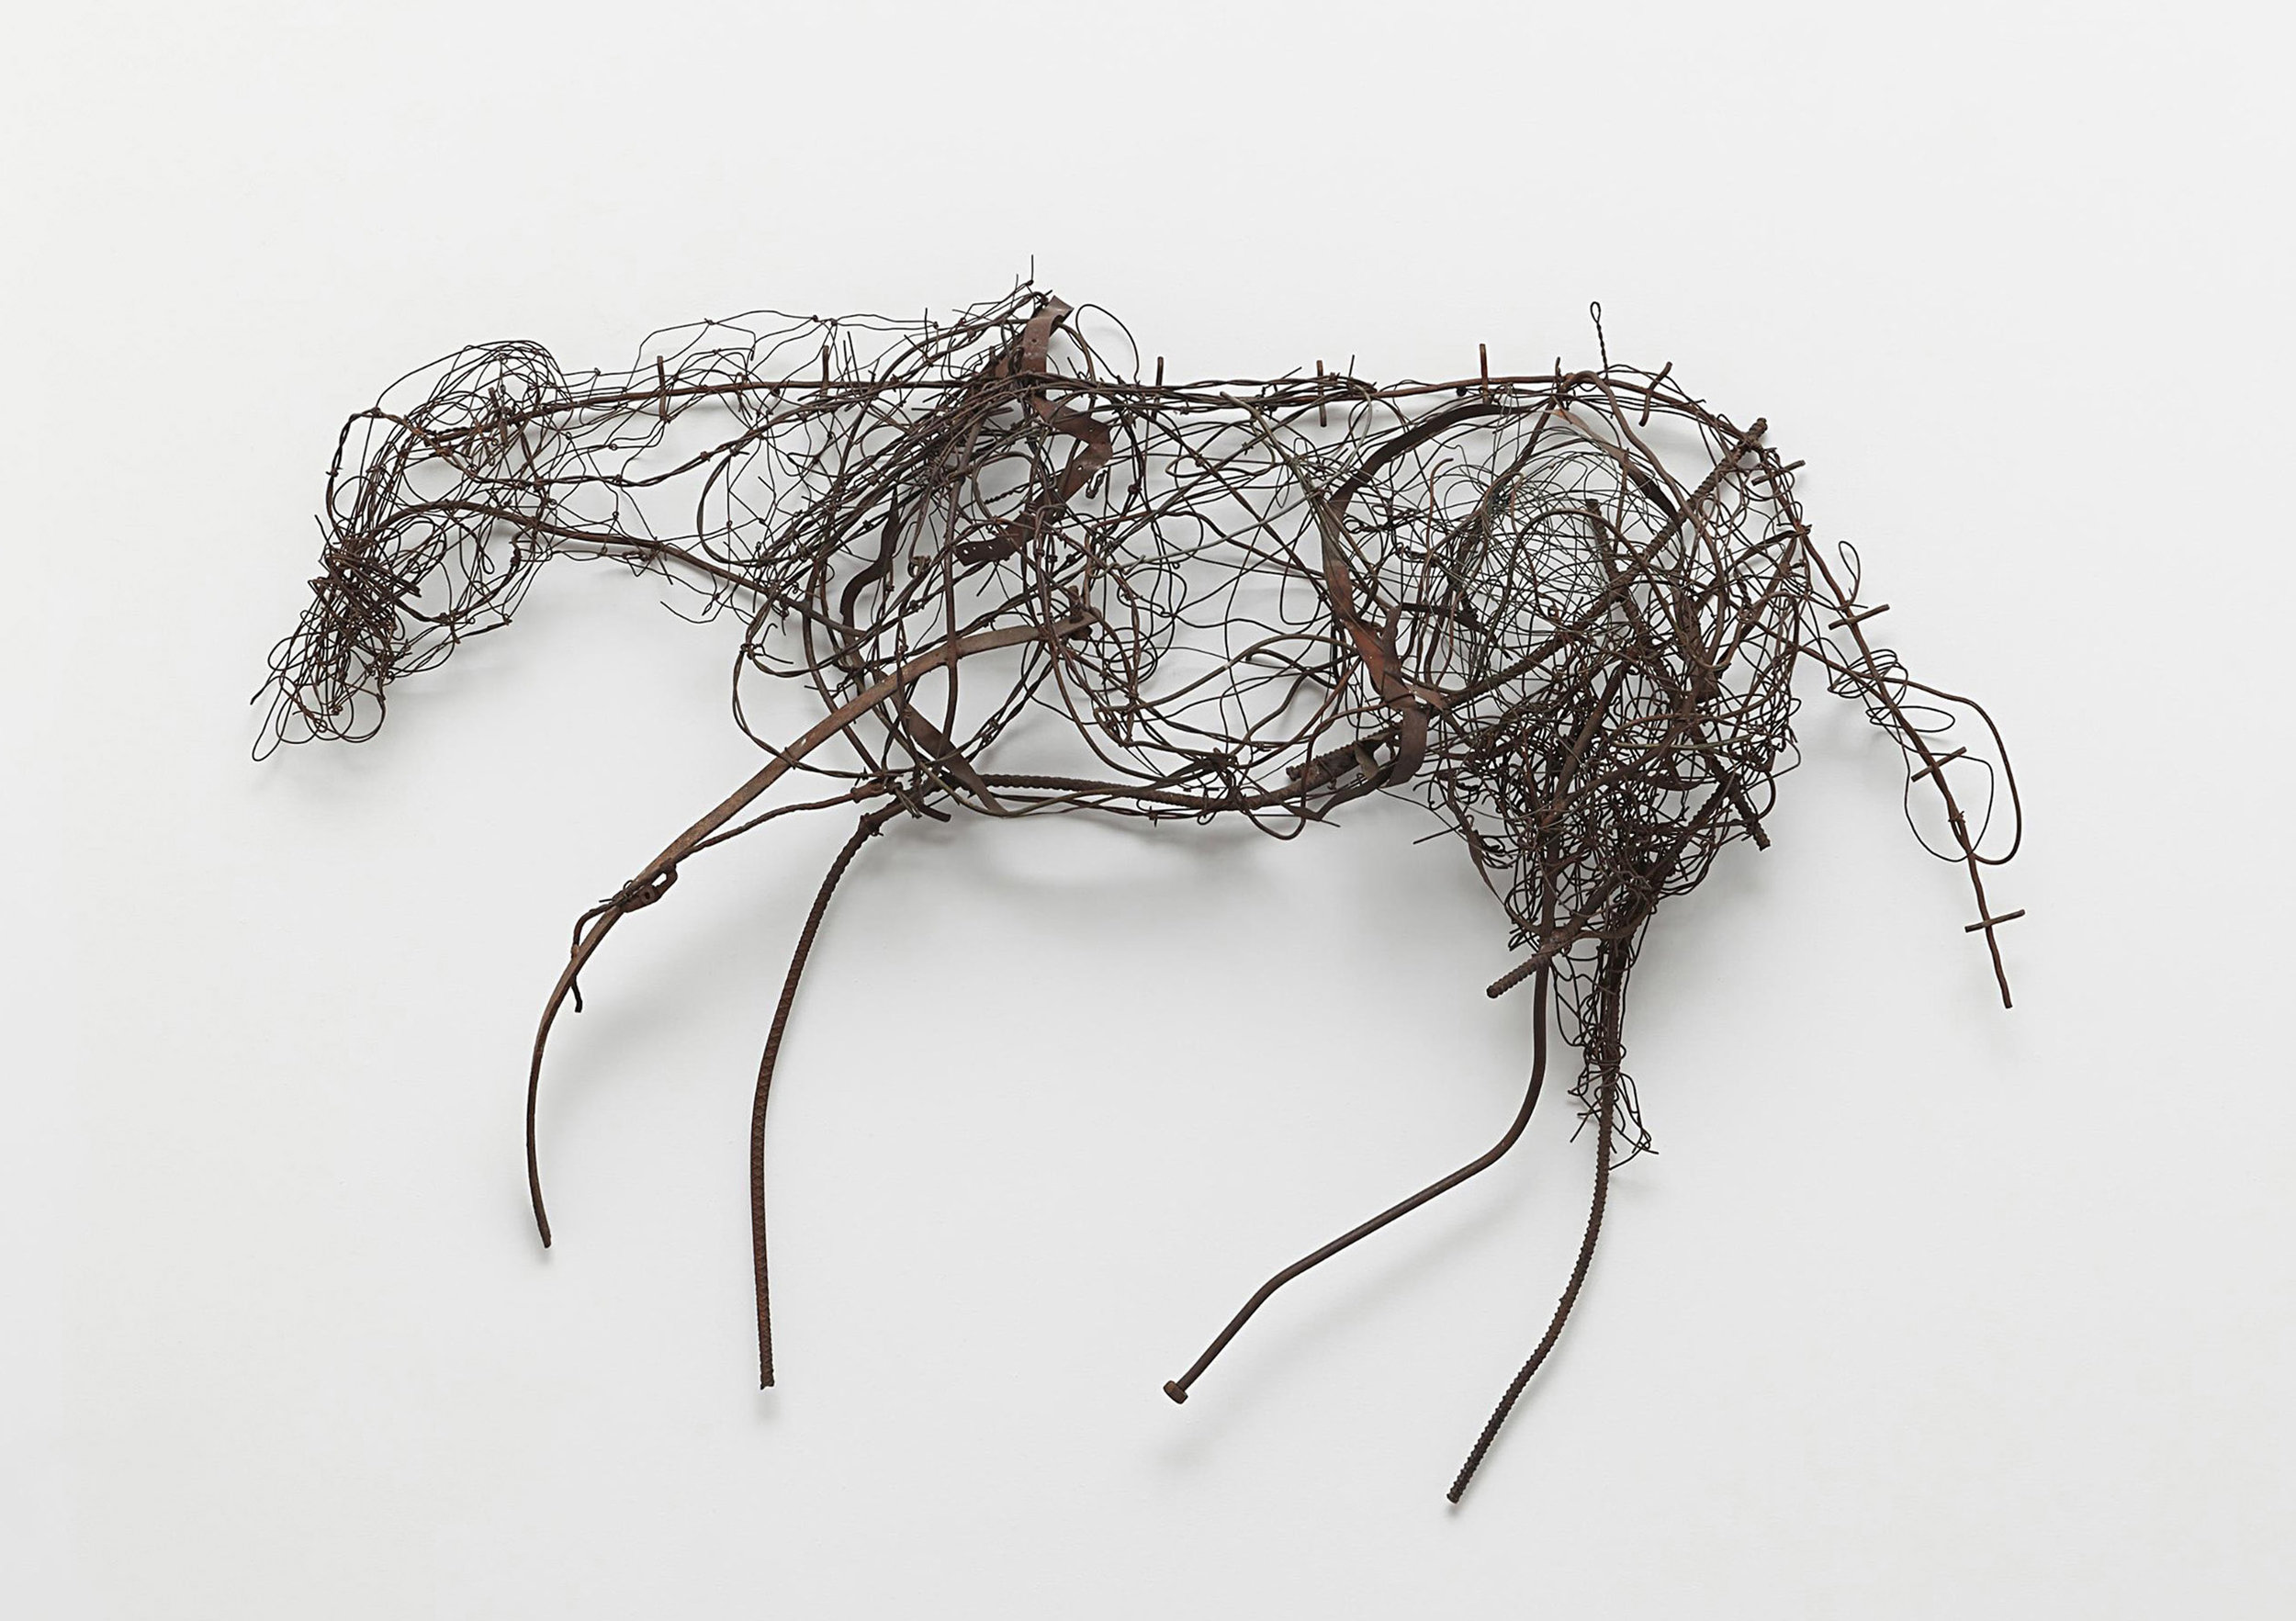 SOLD Calligraphy, 1986,   Barbed wire and metal, 36 x 54 x 11 inches